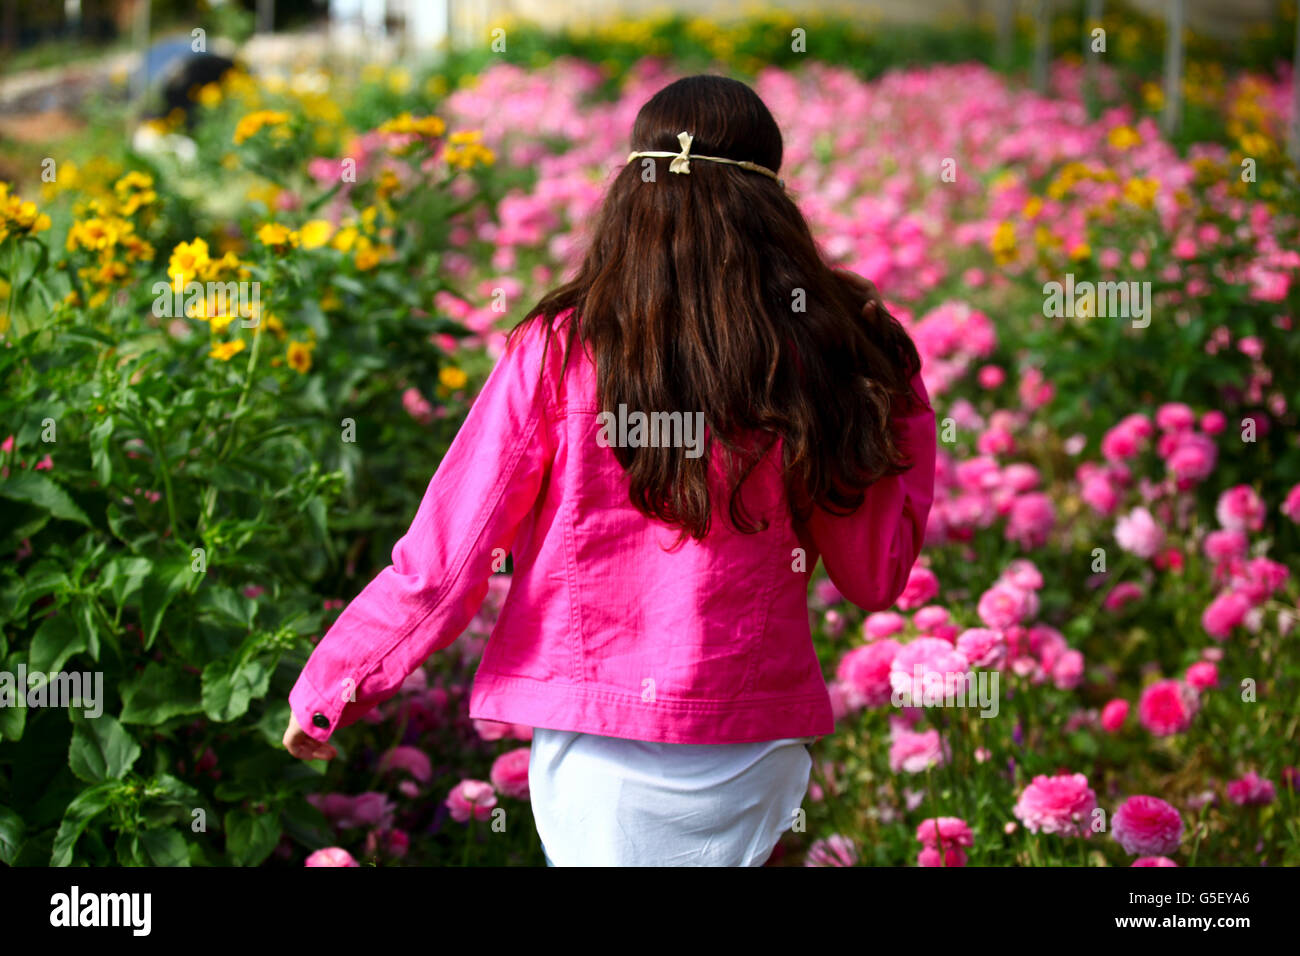 Young preteen girl of 12 in a hothouse of pink flowers - Stock Image